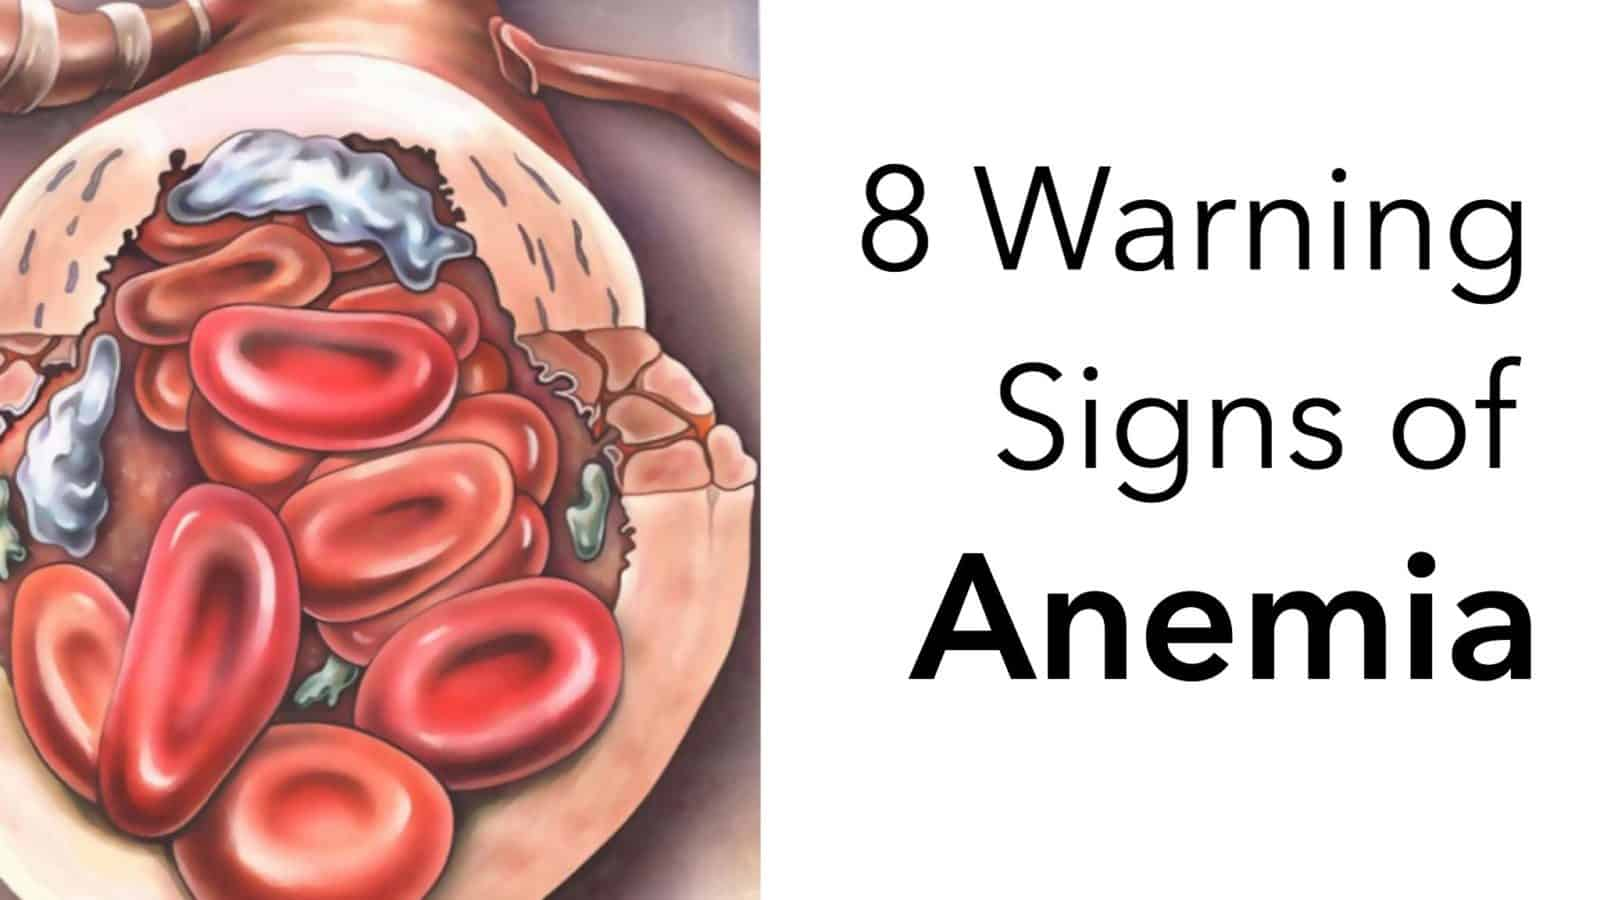 8 Warning Signs of Anemia